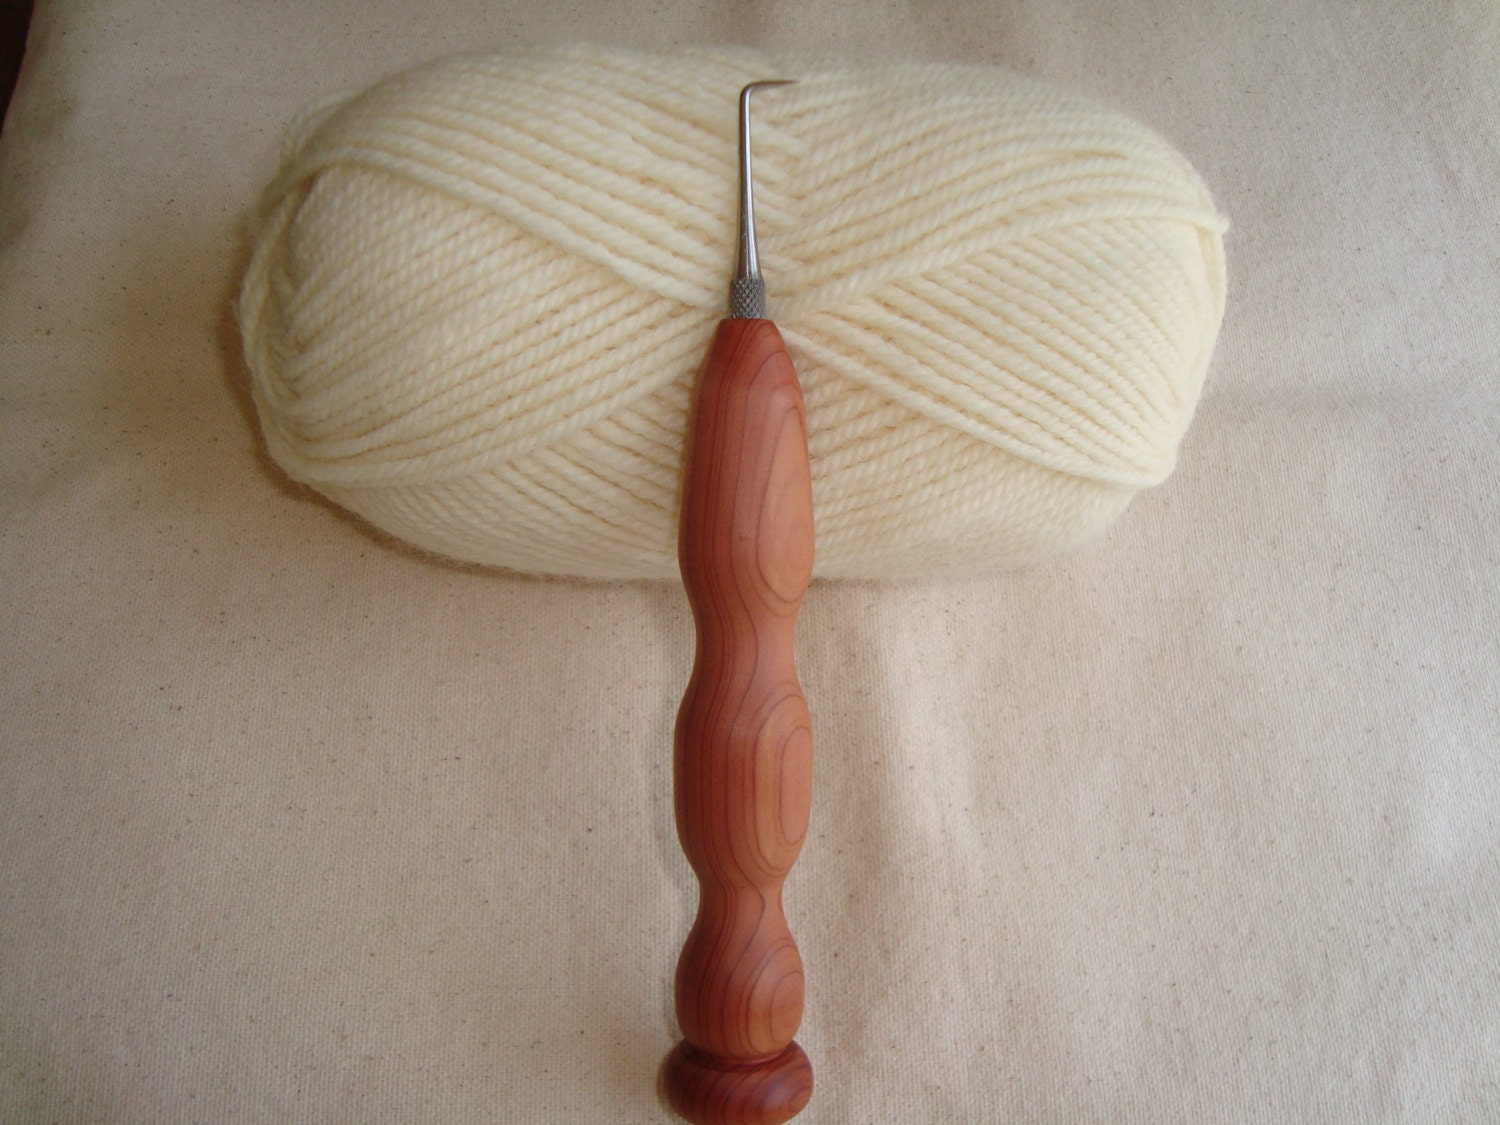 Knitting Looms Wood : Wicked point knitting loom hook with cedar wood handle